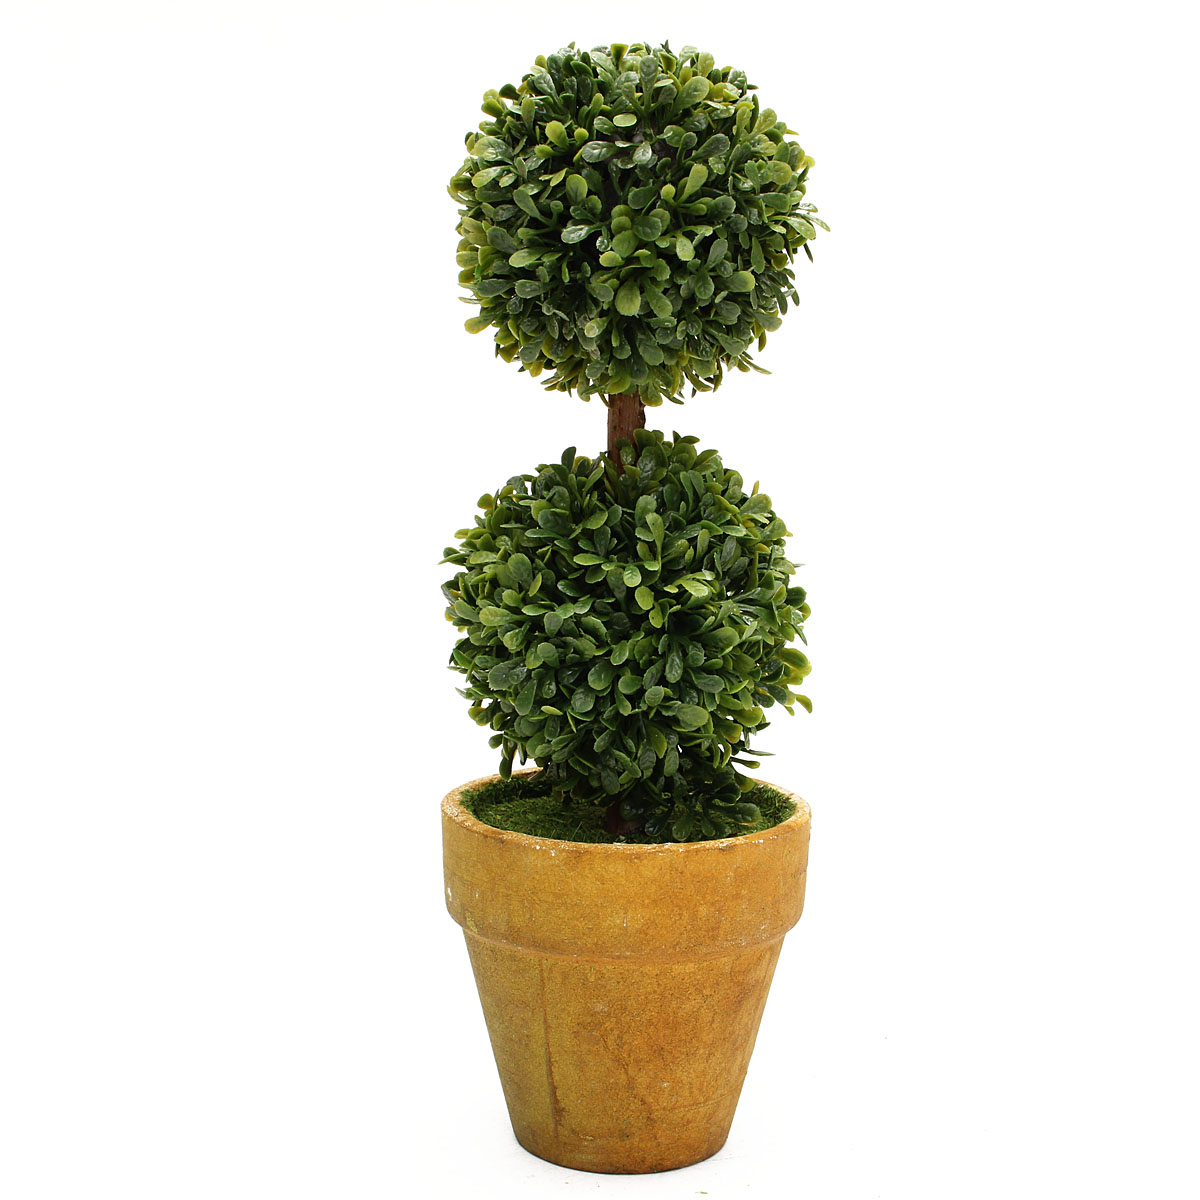 Wedding Arrangement Artificial Garden Gr Buxus Boxwood Topiary Landscape Fake Trees Pots Plants In Dried Flowers From Home On